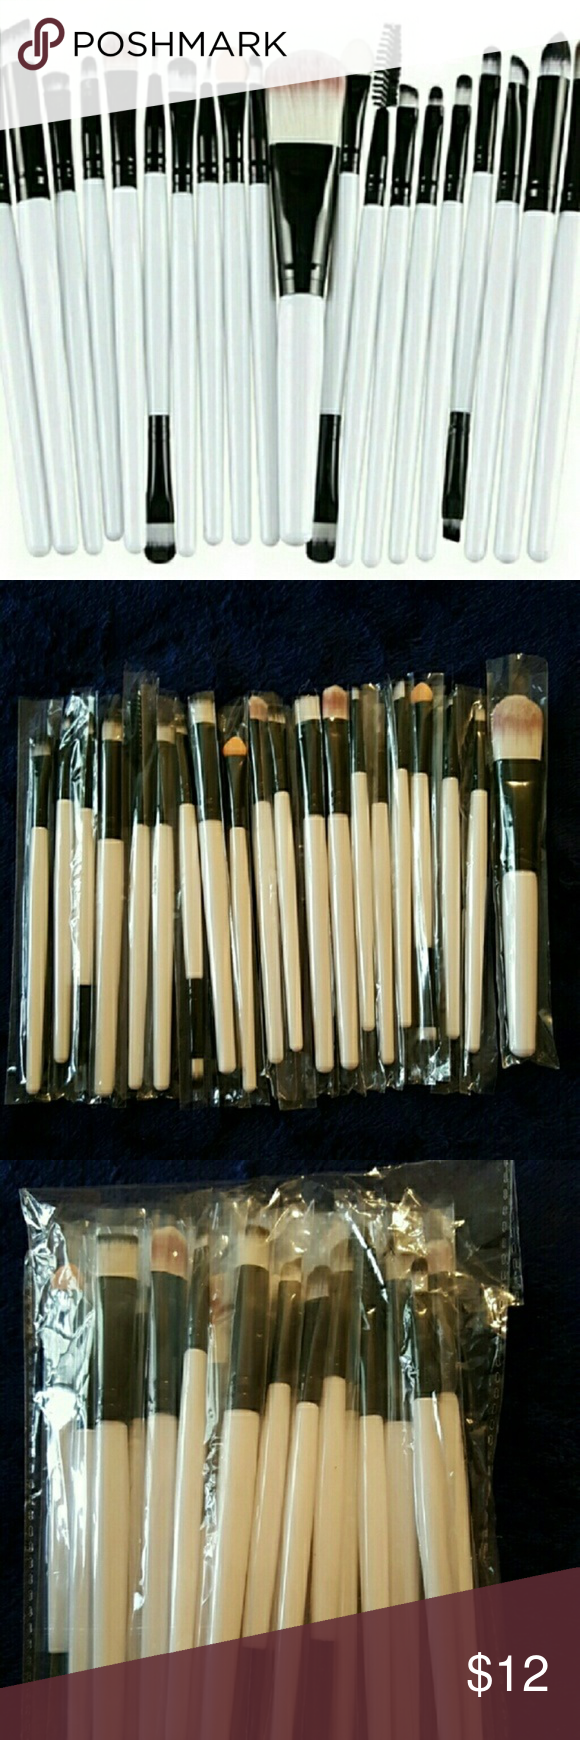 20pc White Makeup Brush Set CHECK OUT MY CLOSET FOR MORE